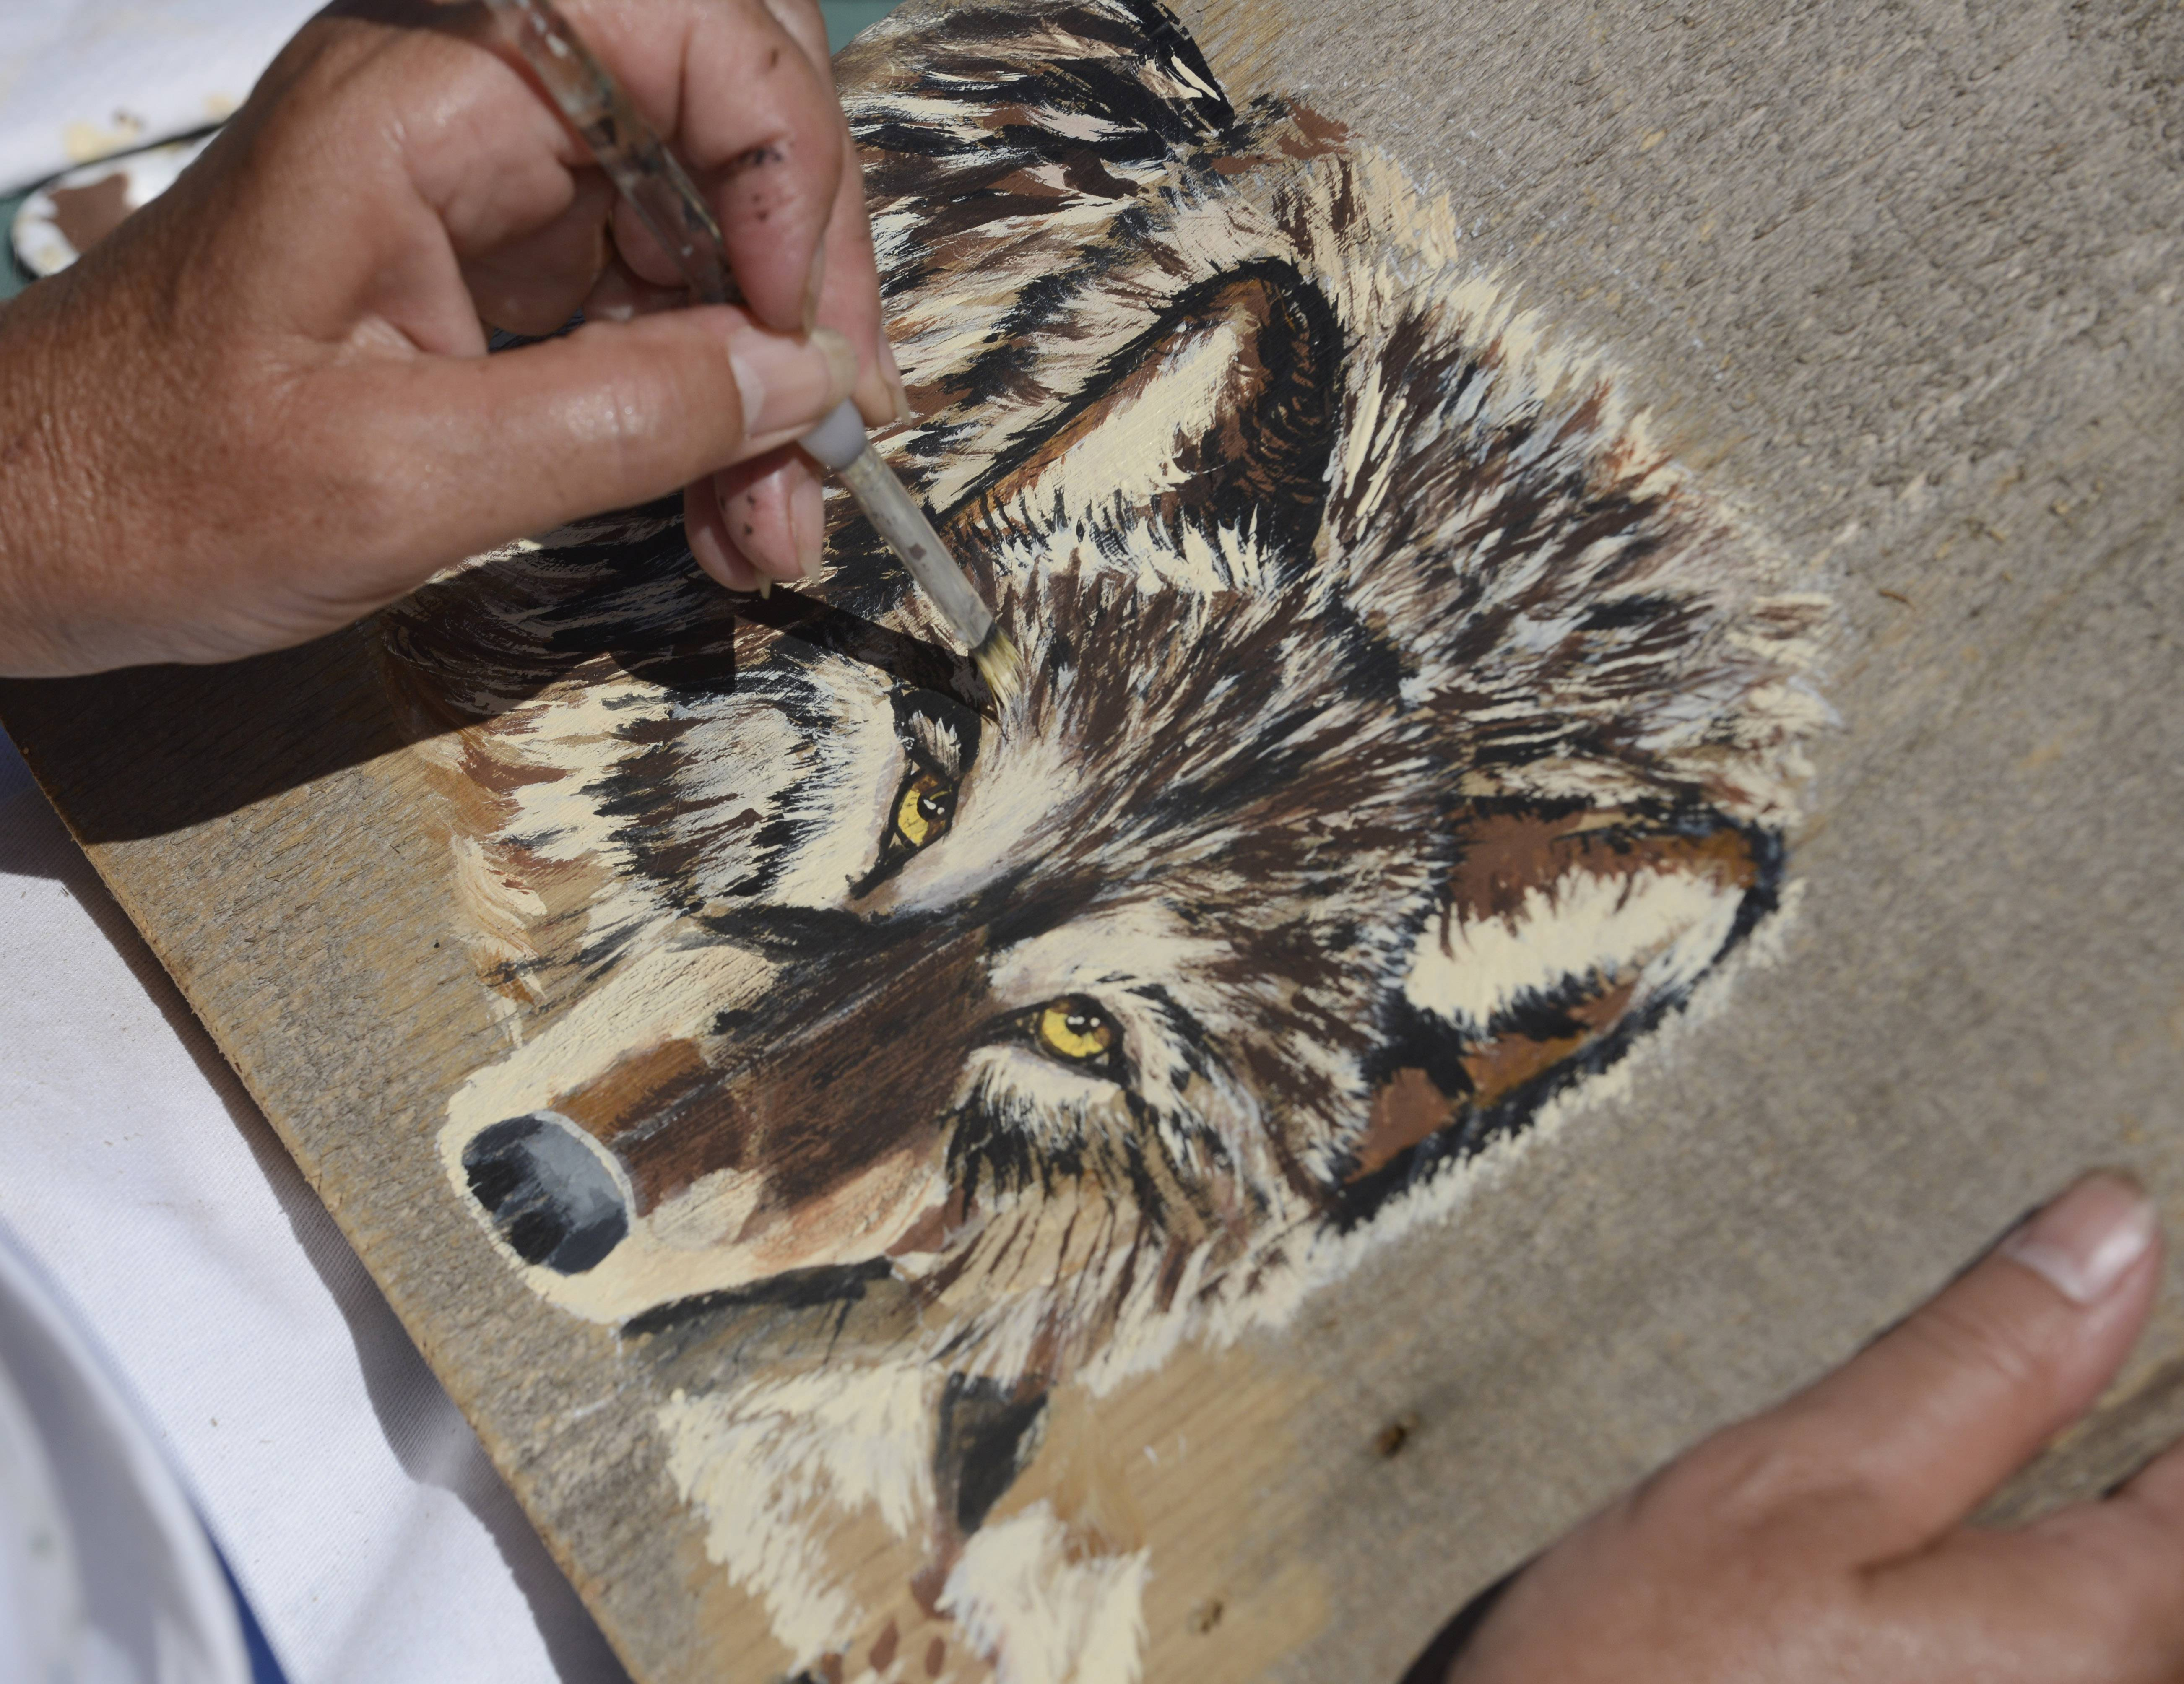 An image of a wolf using acrylic on antique barn wood was among the offerings last year during the David Adler Music and Arts Center Festival of the Arts at Cook Park in Libertyville.